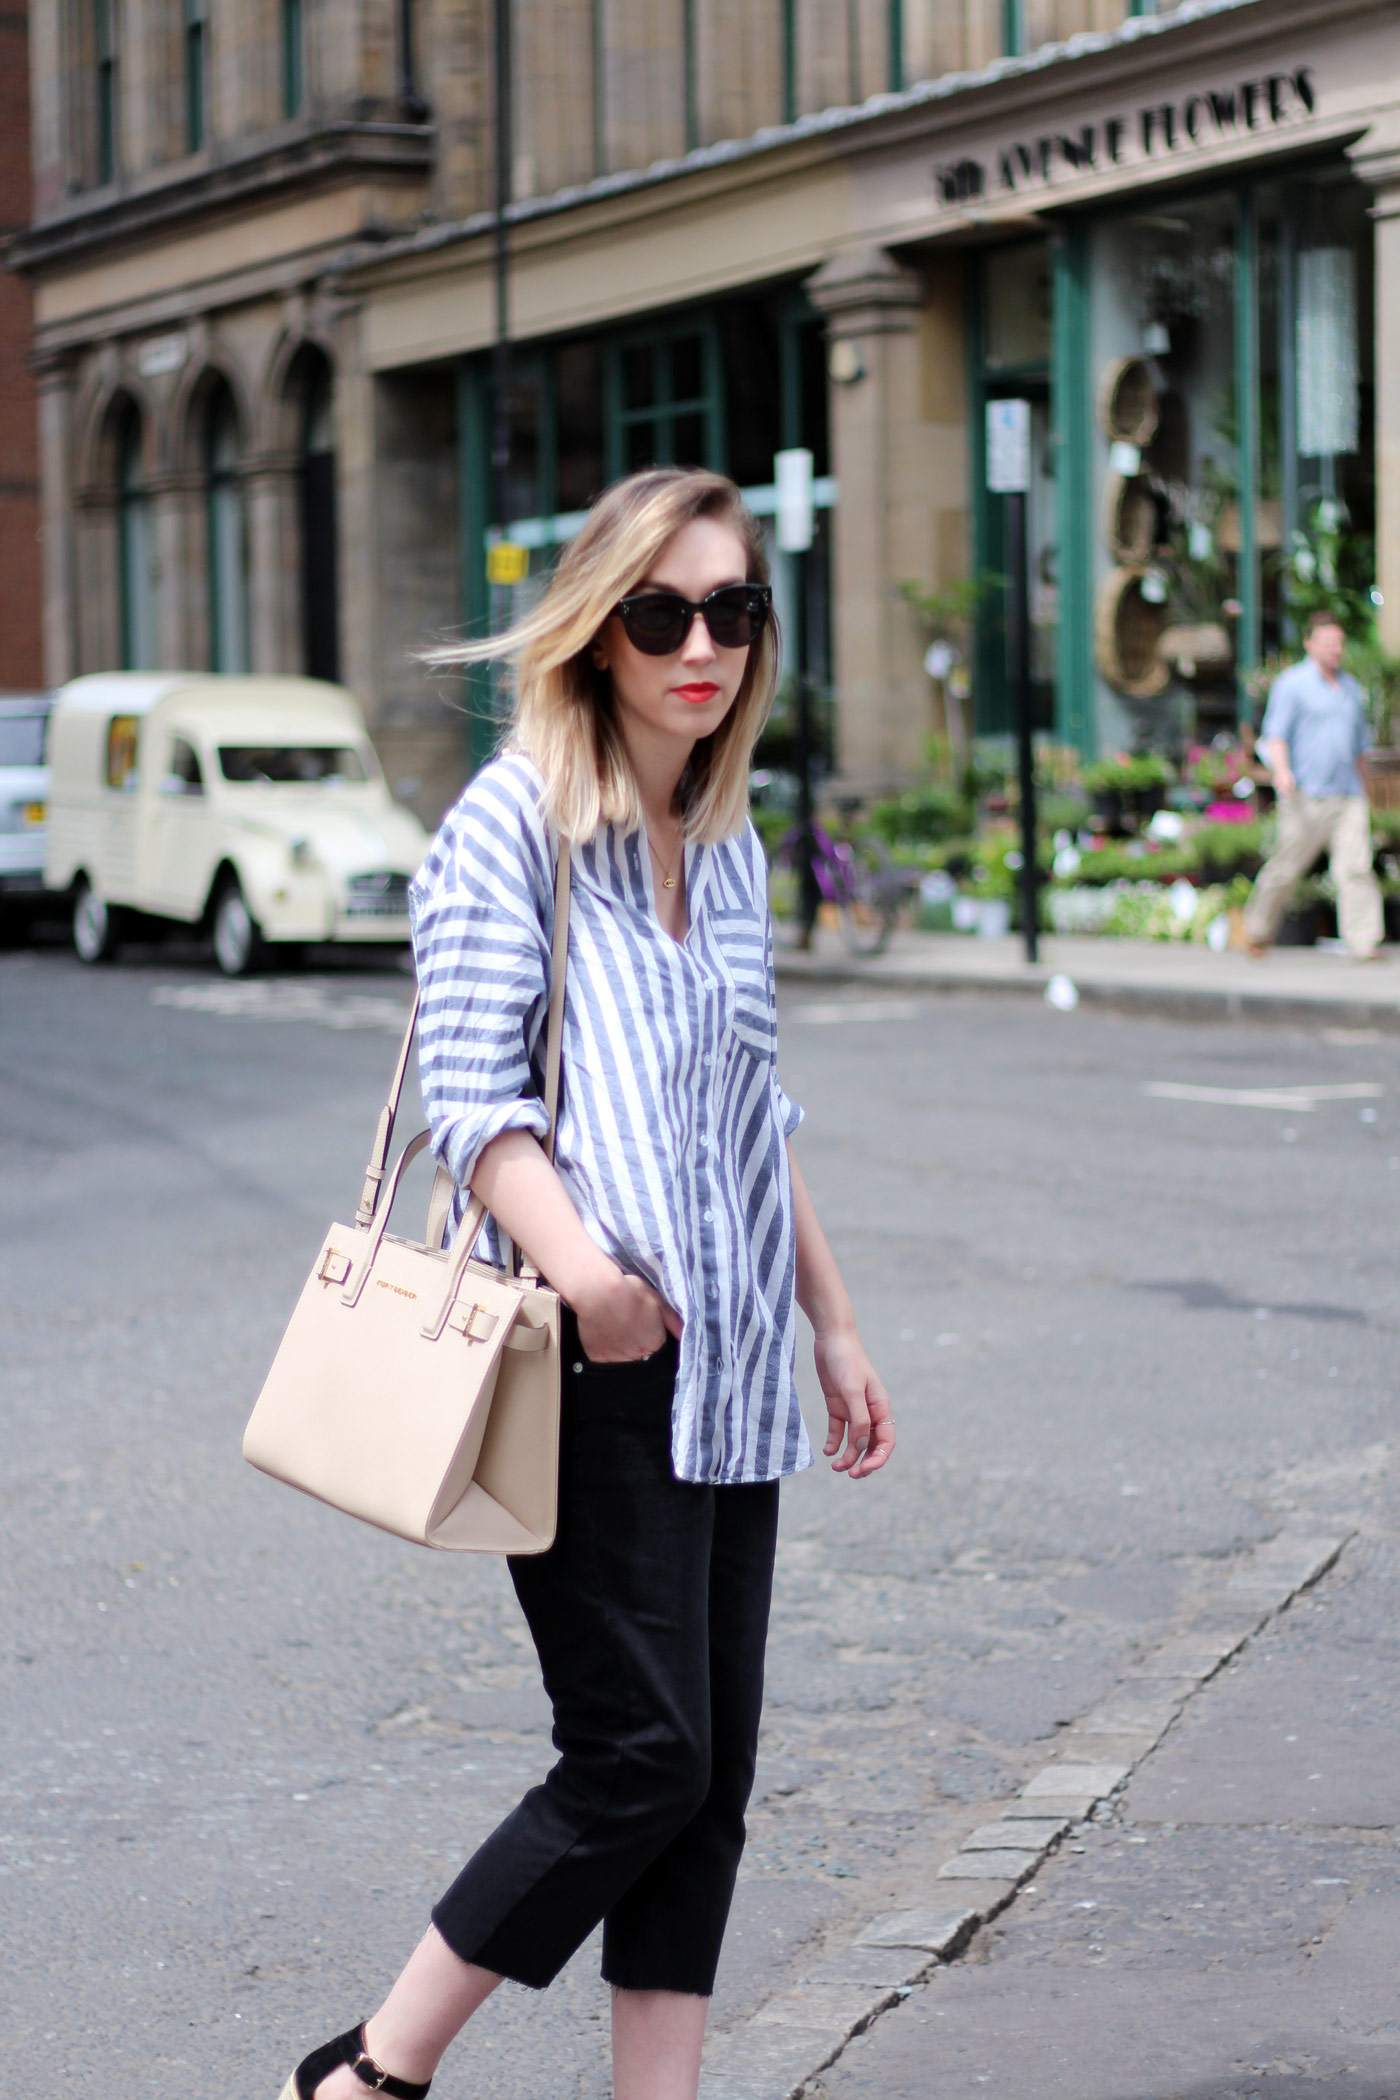 kurt-geiger-espadrille-wedge-heel-black-beige-bag-asos-stripe-shirt-celine-audrey-sunglasses-11